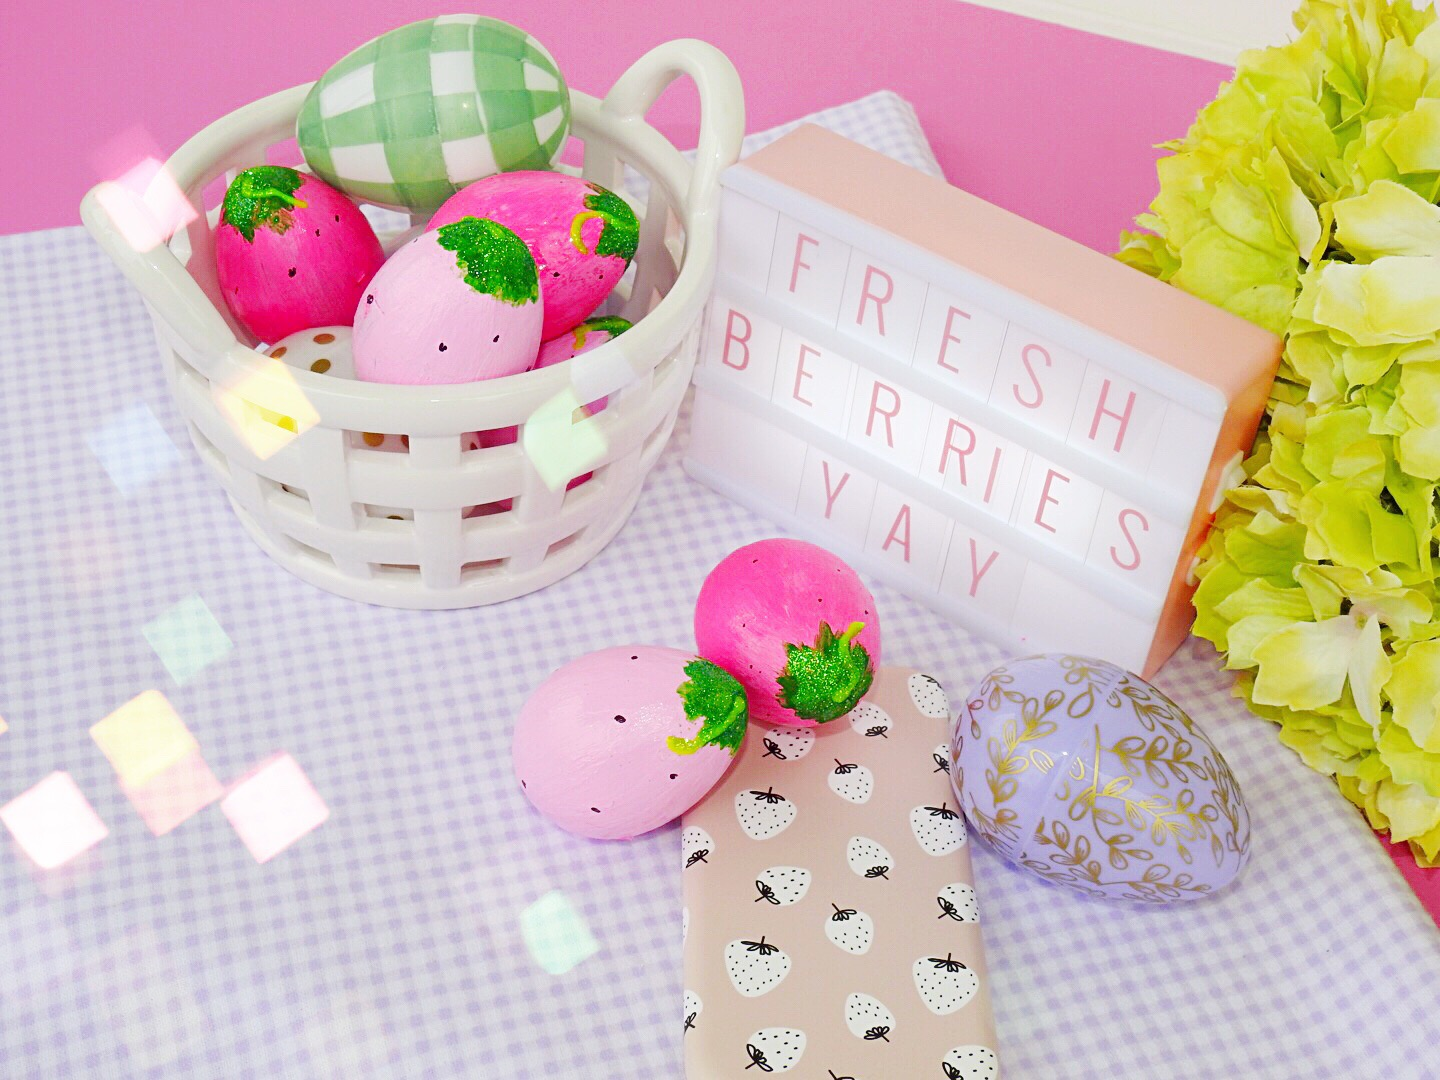 Berry Cute Easter Egg Decorating Ideas: ft Case App | The Yellow ...